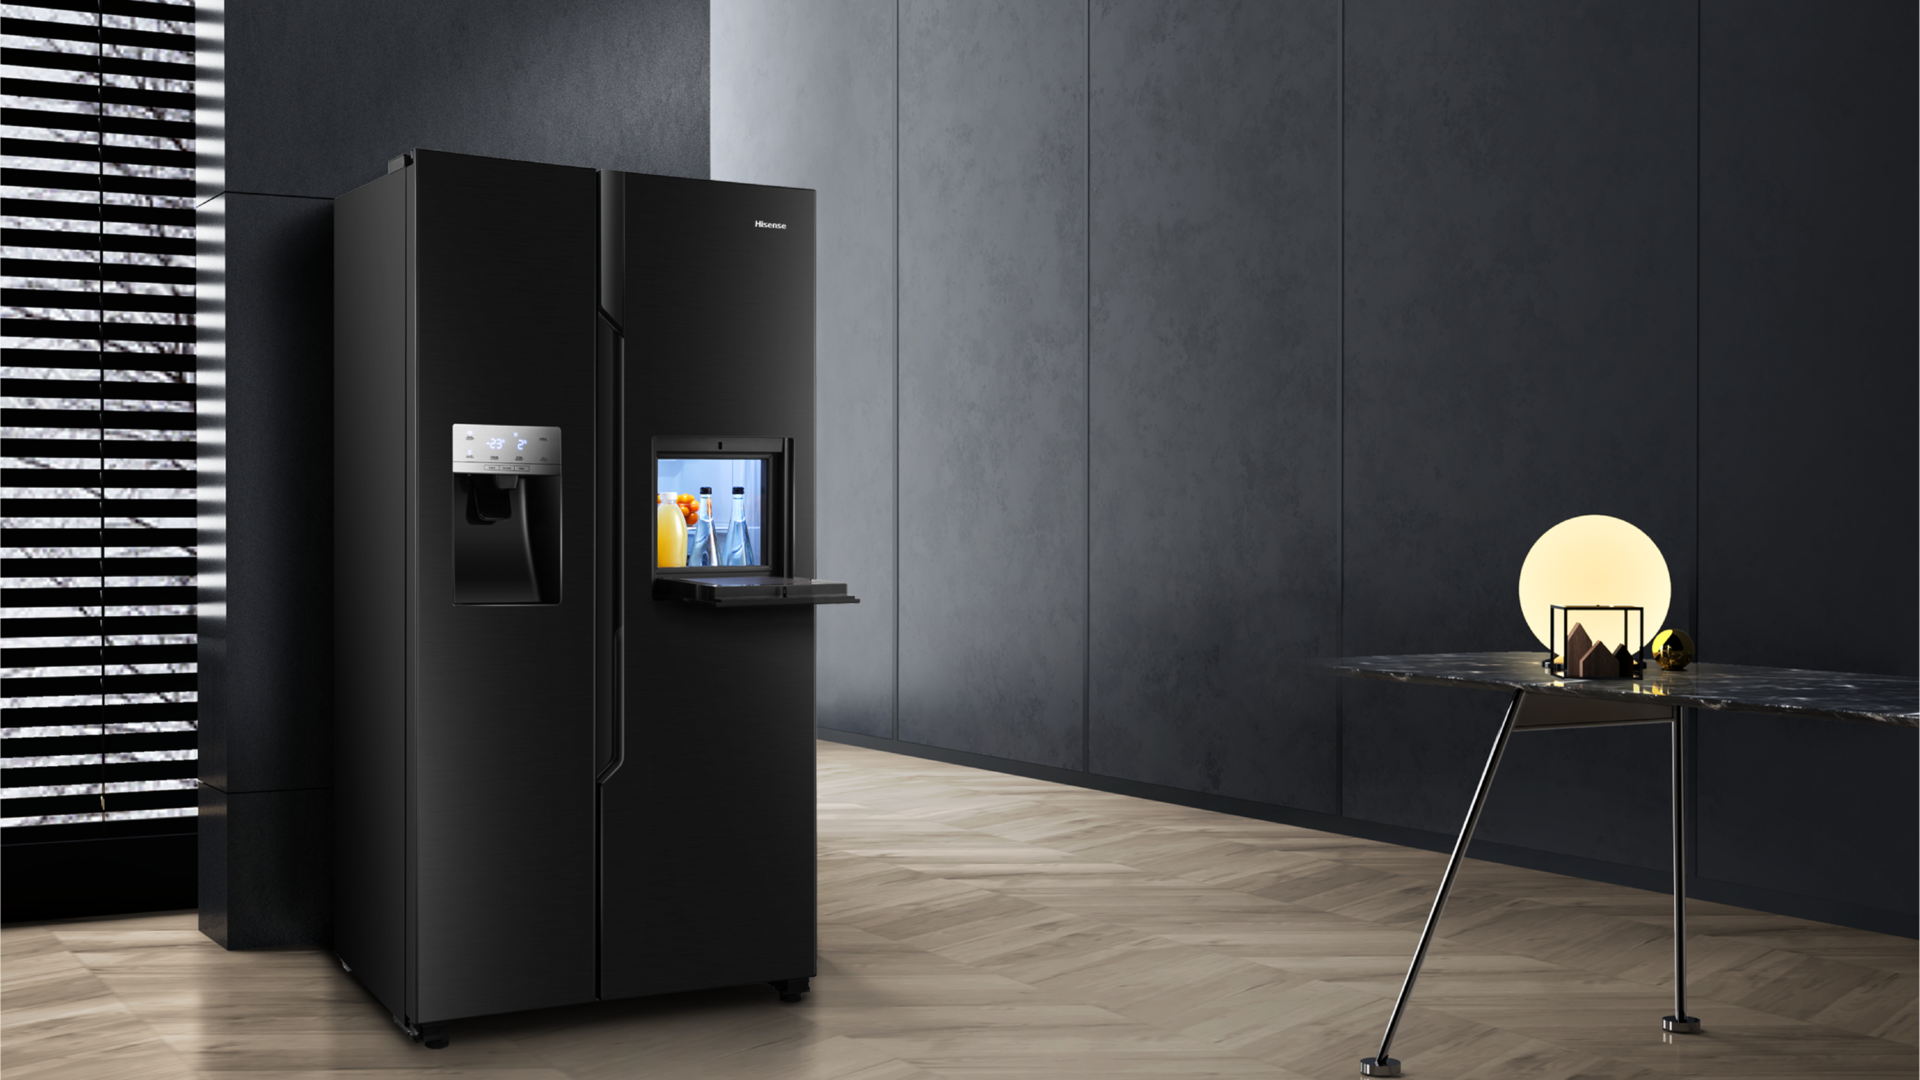 What To Look For In A Side-By-Side Hisense Fridge